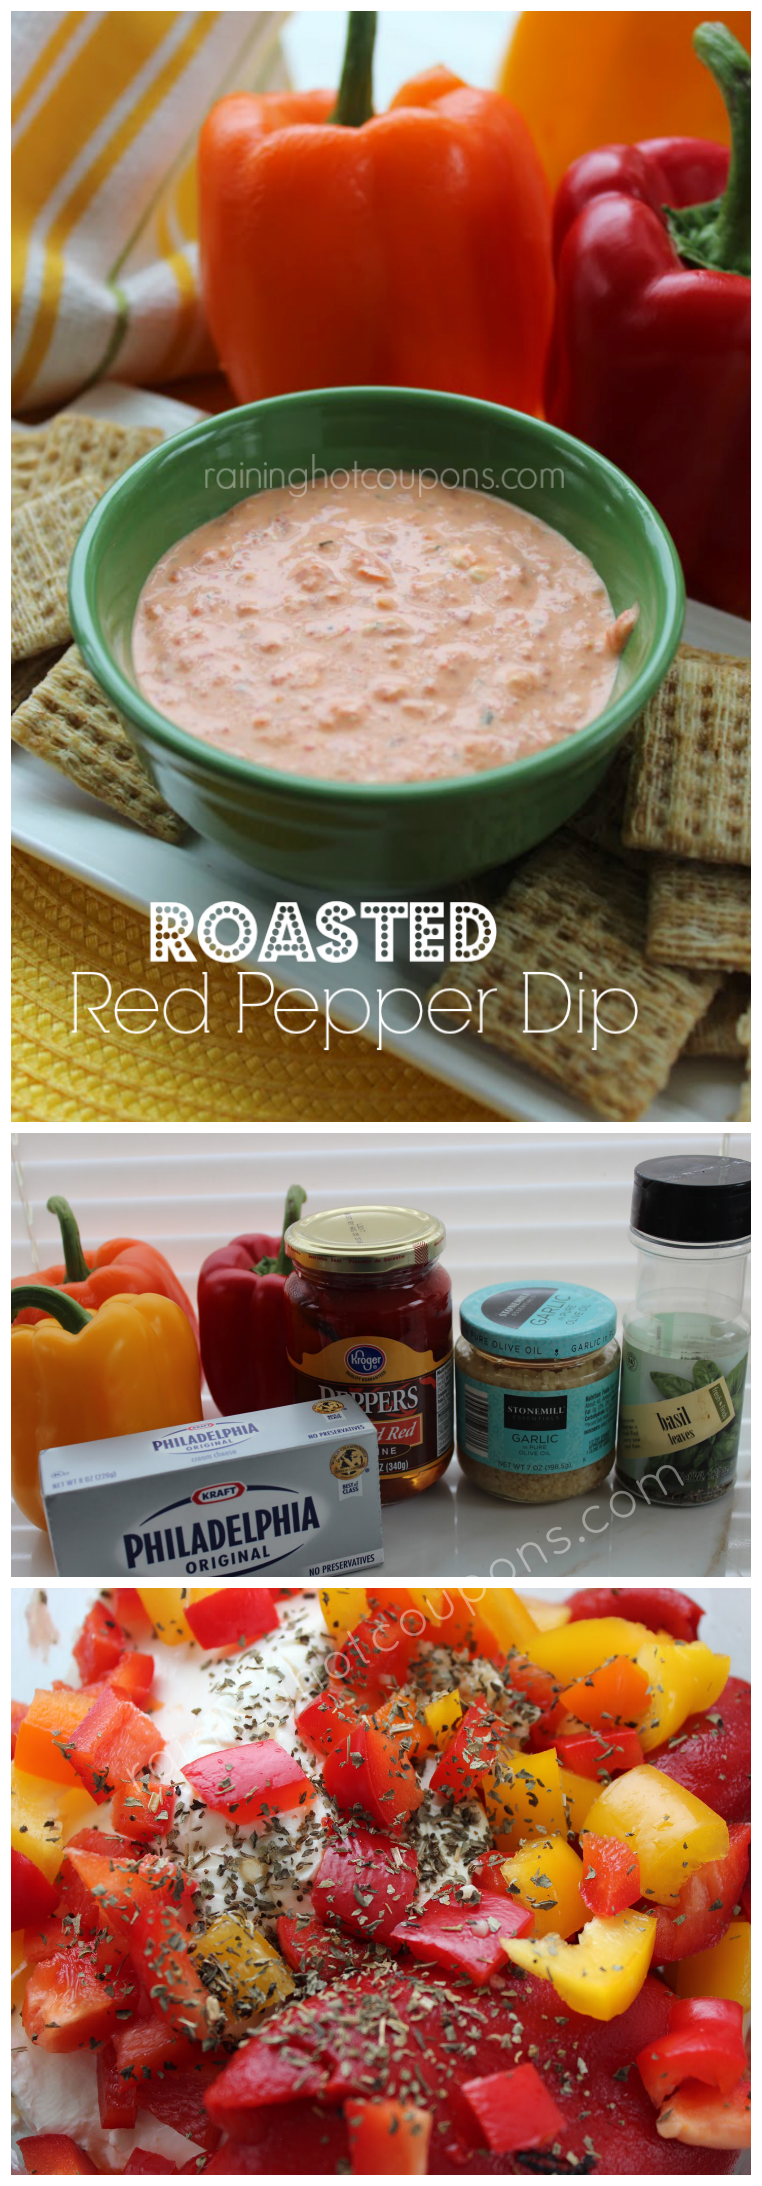 roasted red pepper dip collage